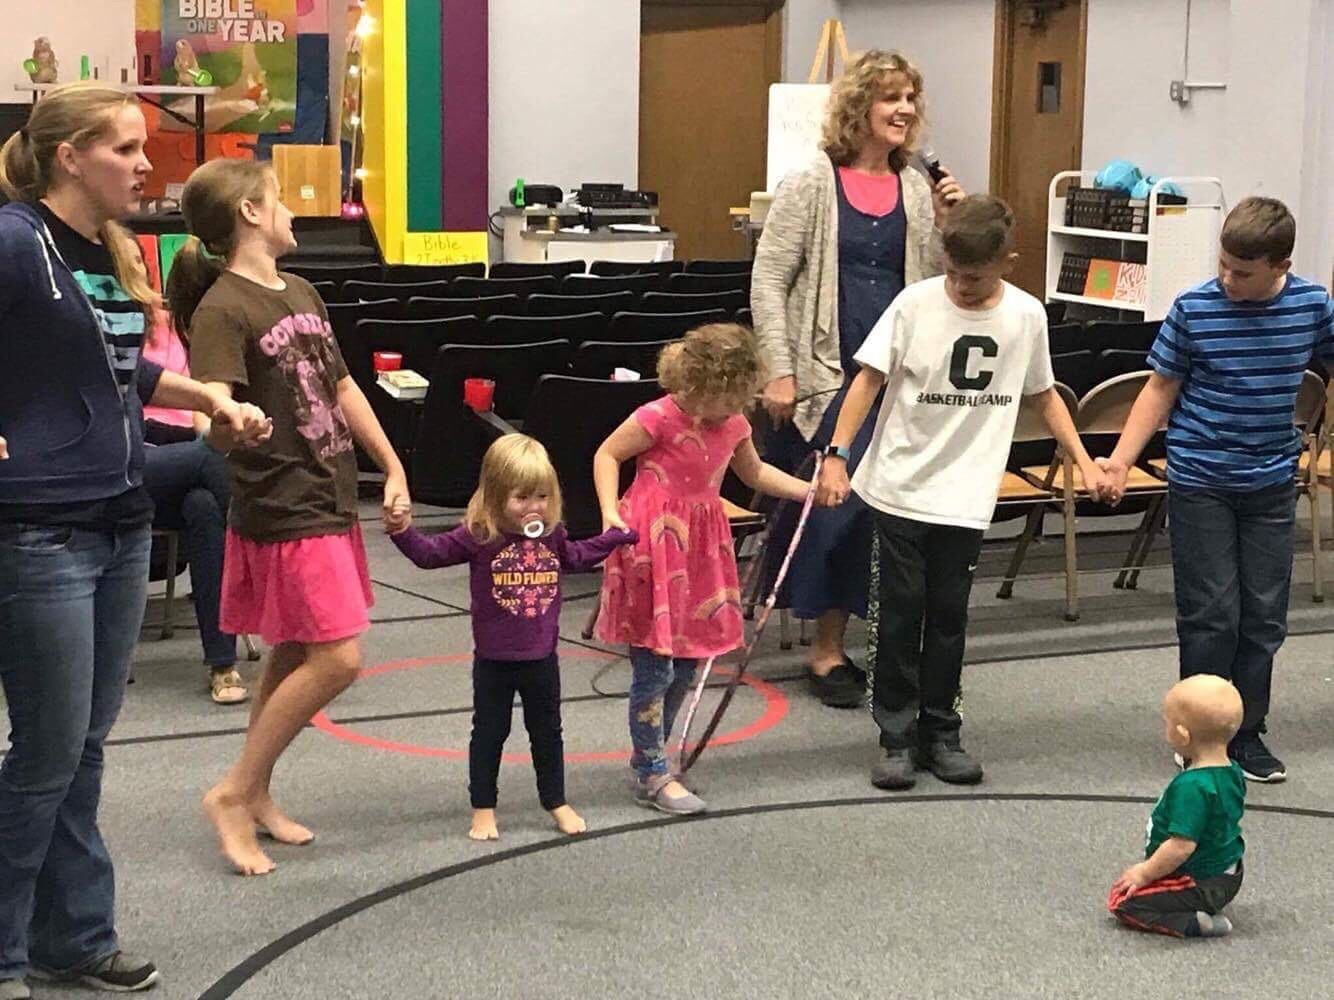 Holding hands, which represented our promises, we had to pass the hula hoop around the circle without letting go; or as was taught to us; breaking our promise.